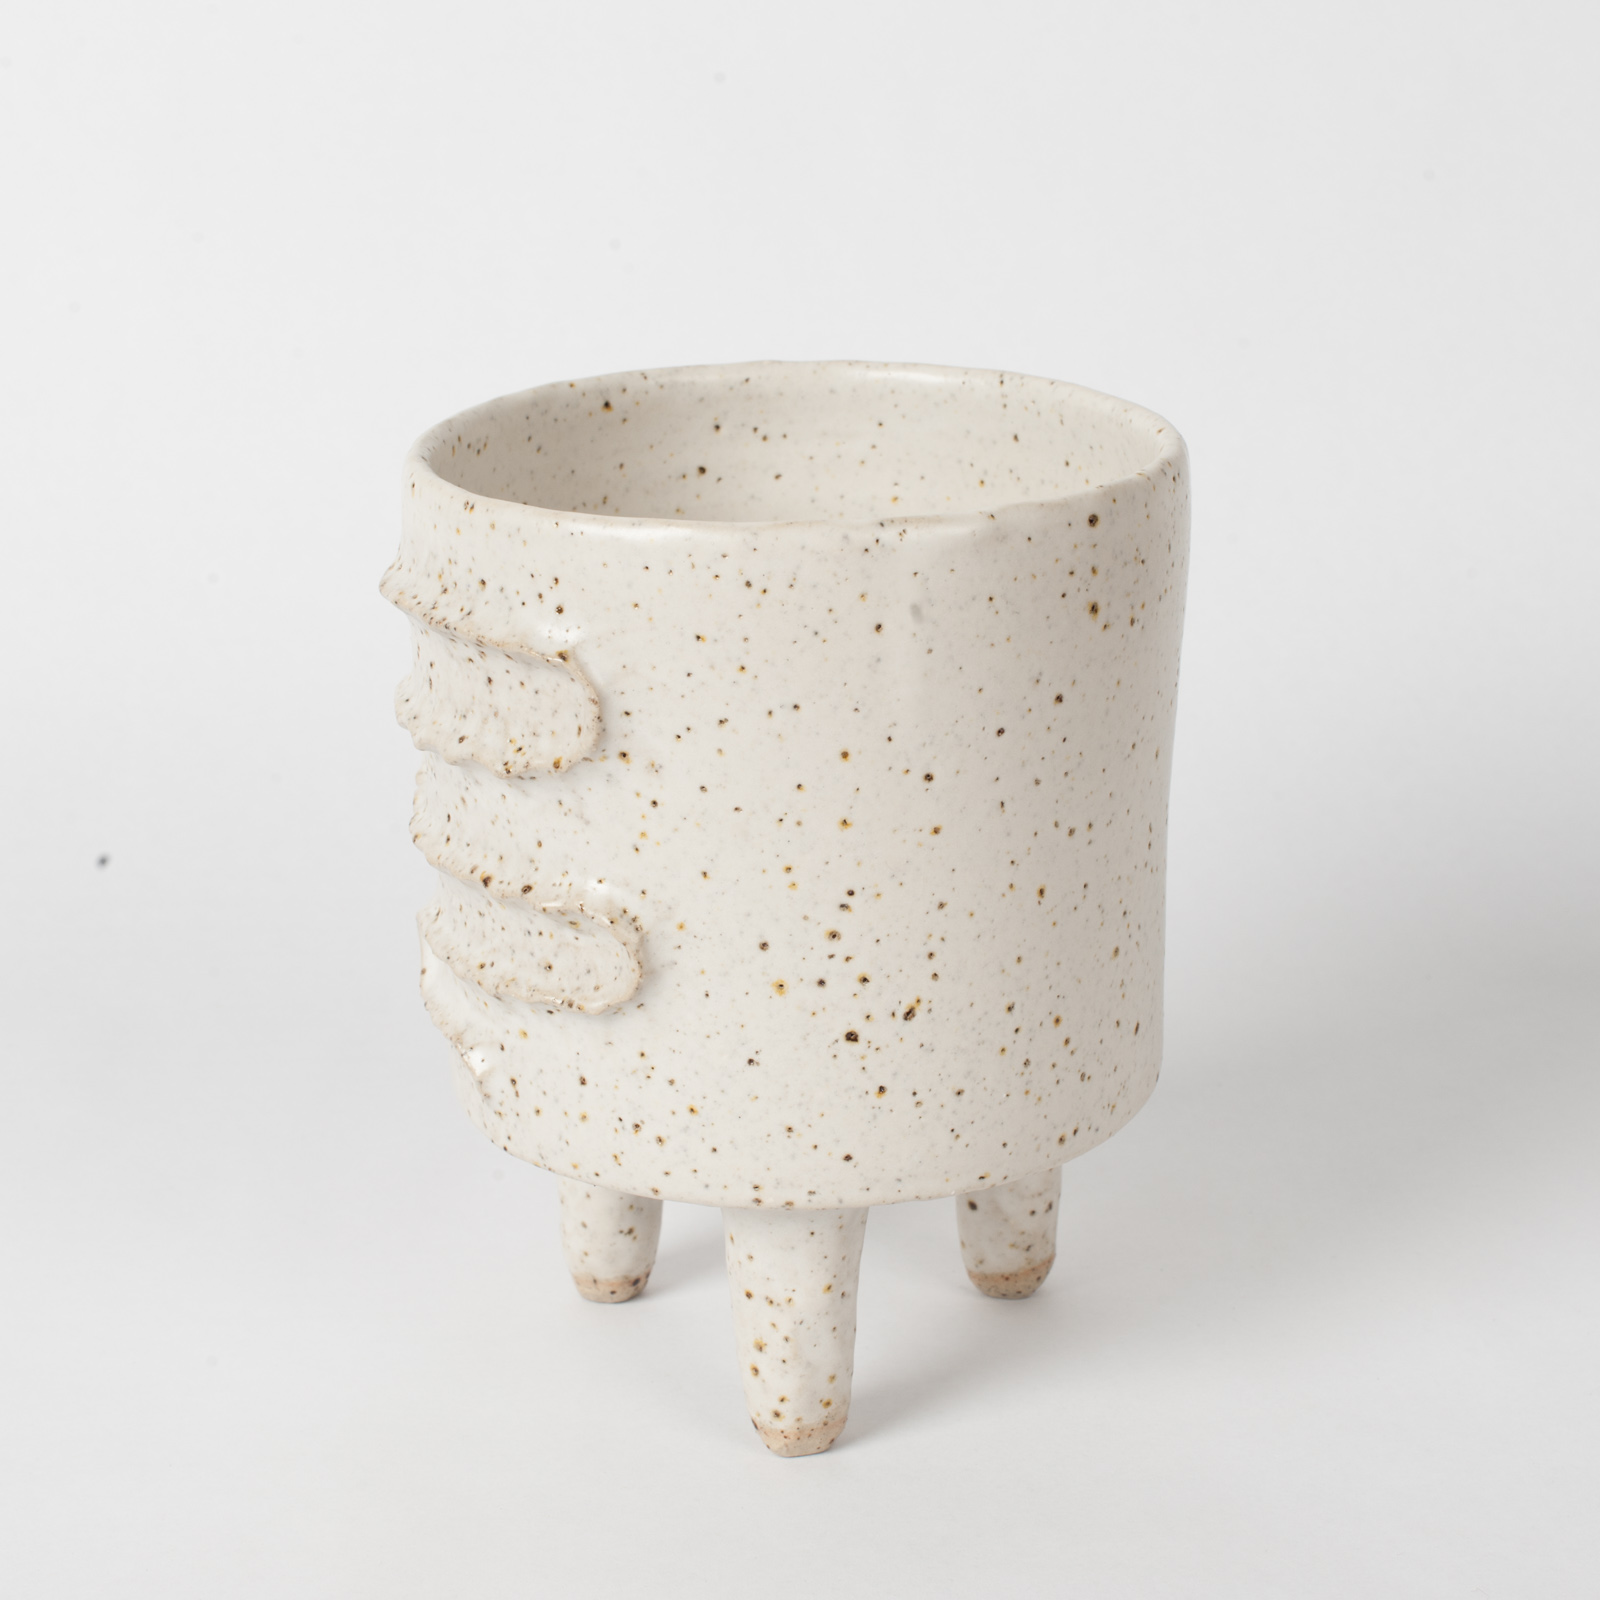 Snake Planter In Stoneware By Peta Armstrong 02